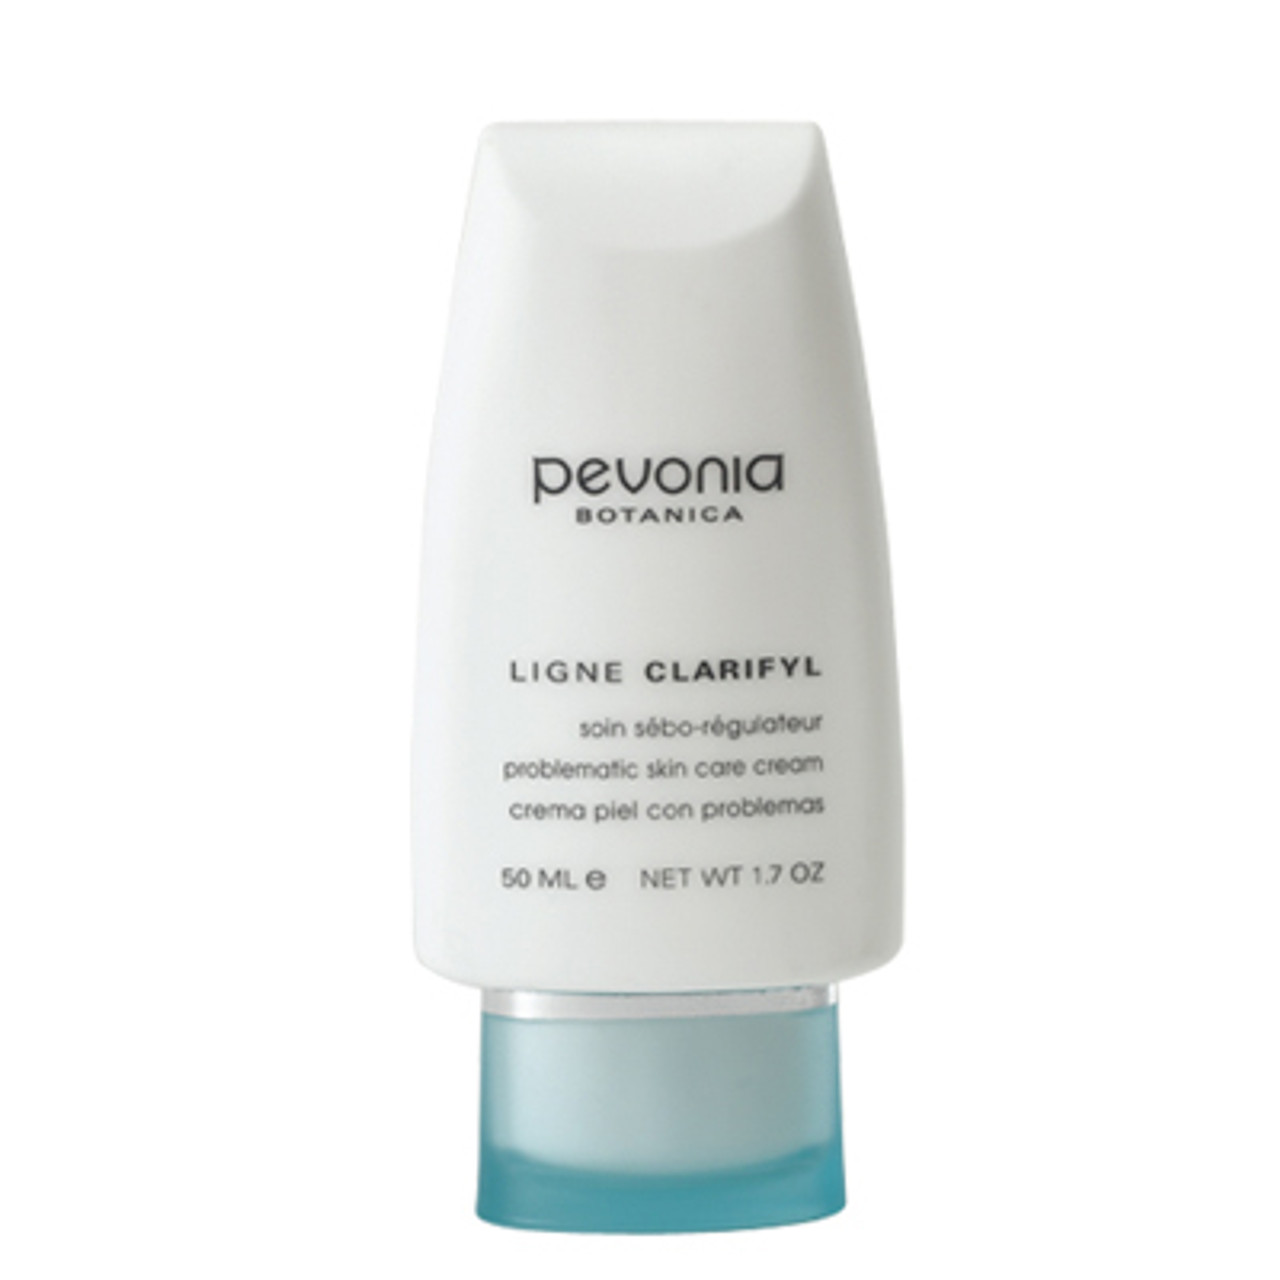 Pevonia Problematic Skin Care Cream